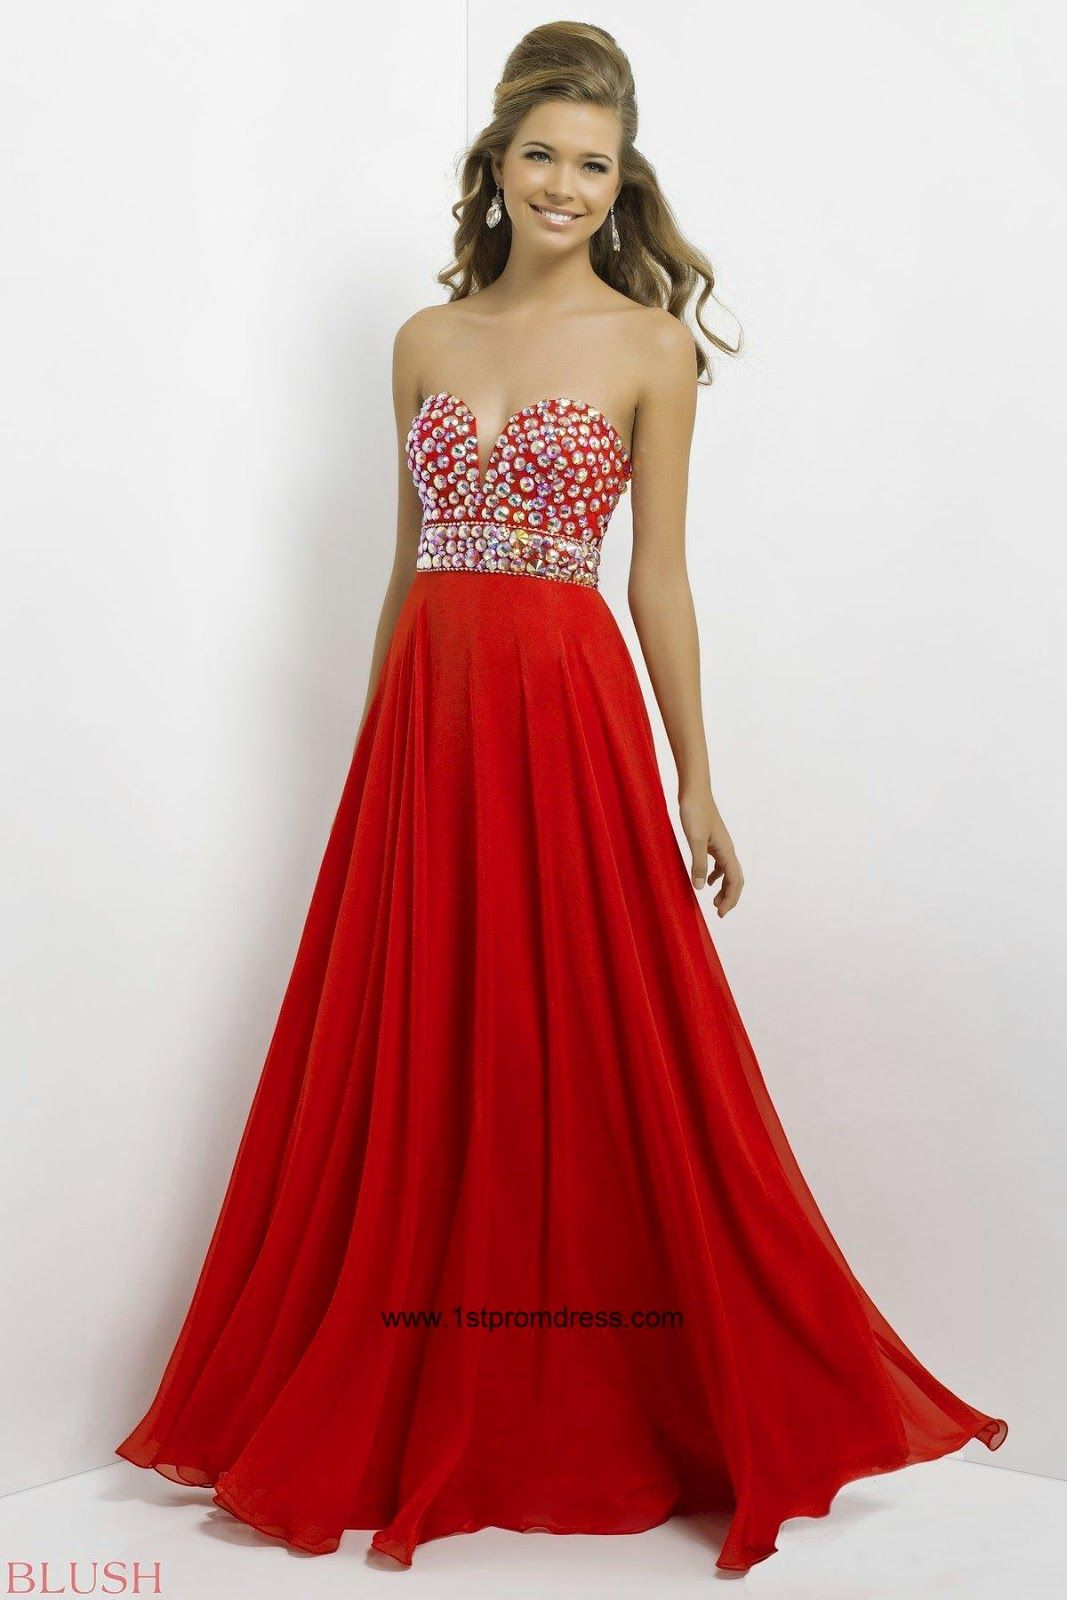 Formal Dresses Under 100 | Gommap Blog